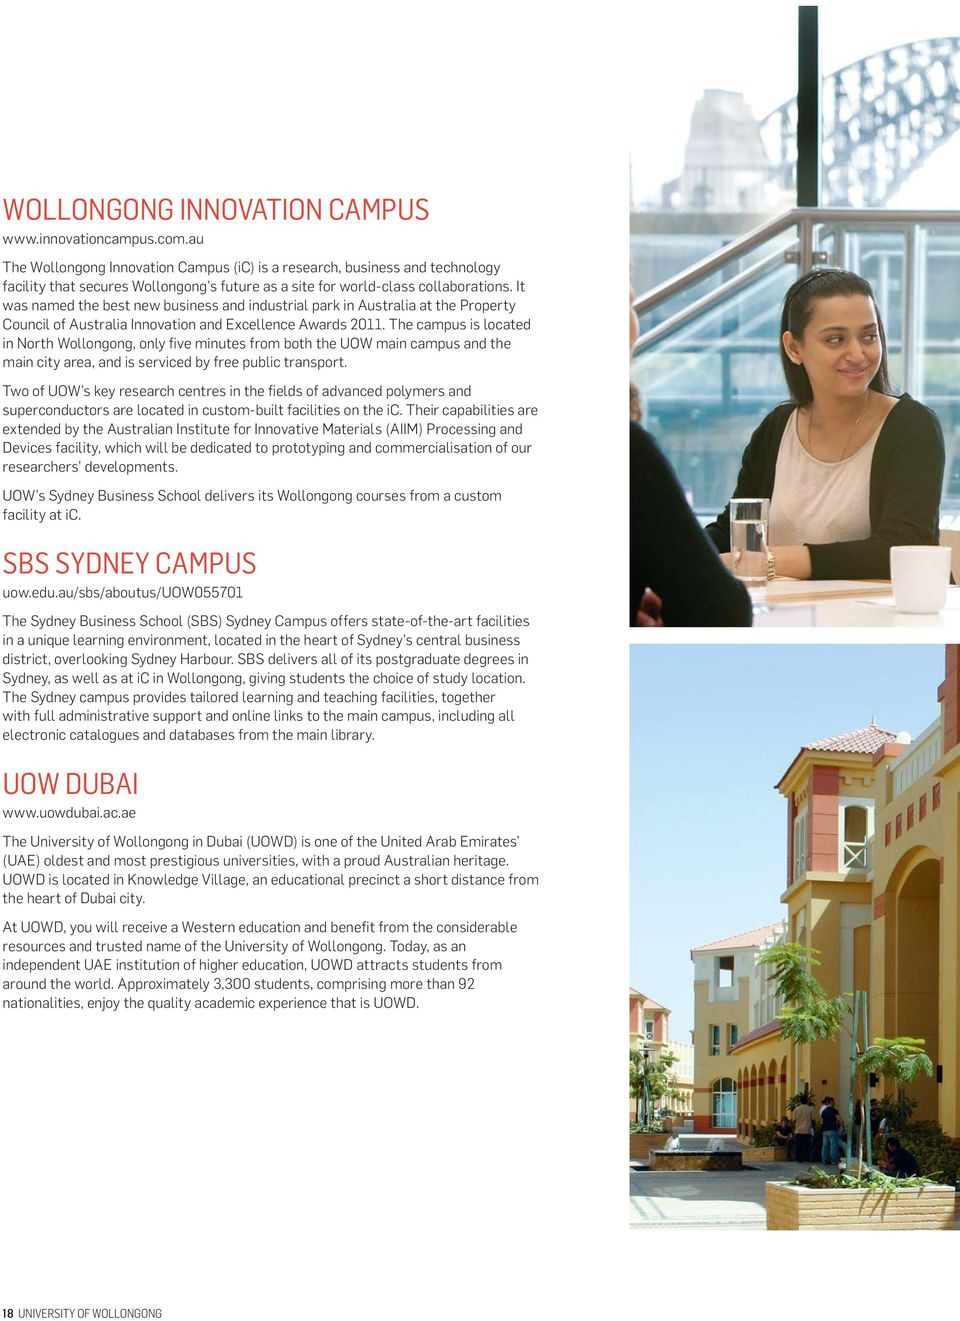 It was named the best new business and industrial park in Australia at the Property Council of Australia Innovation and Excellence Awards 2011.